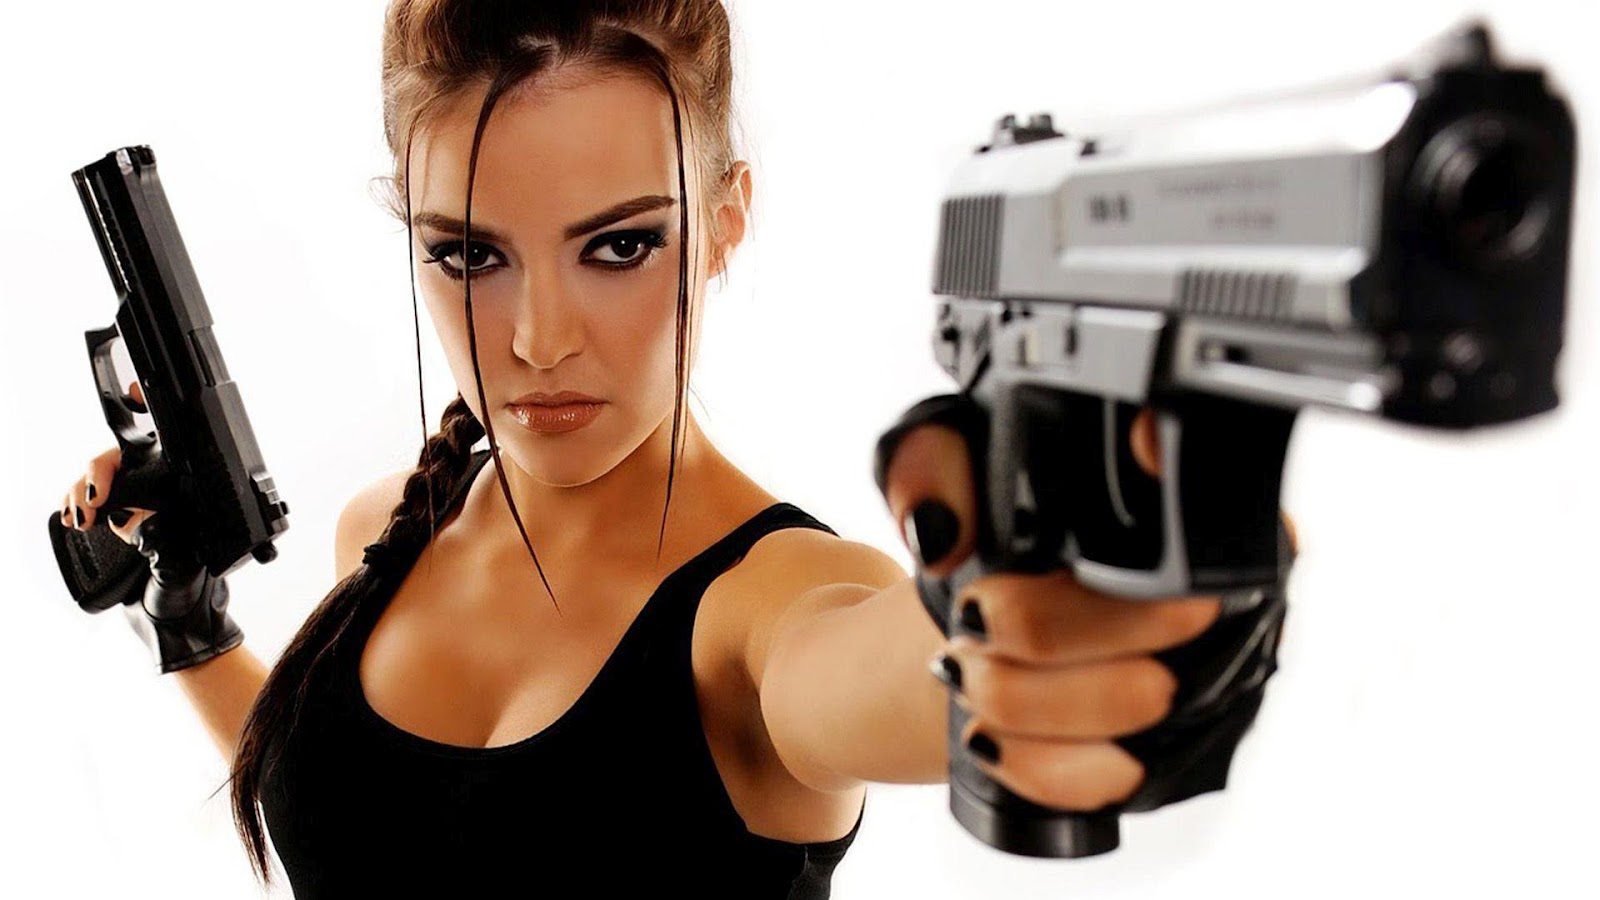 hd girls wallpapers beautiful sexy girls with guns wallpapers girl gun 1600x900